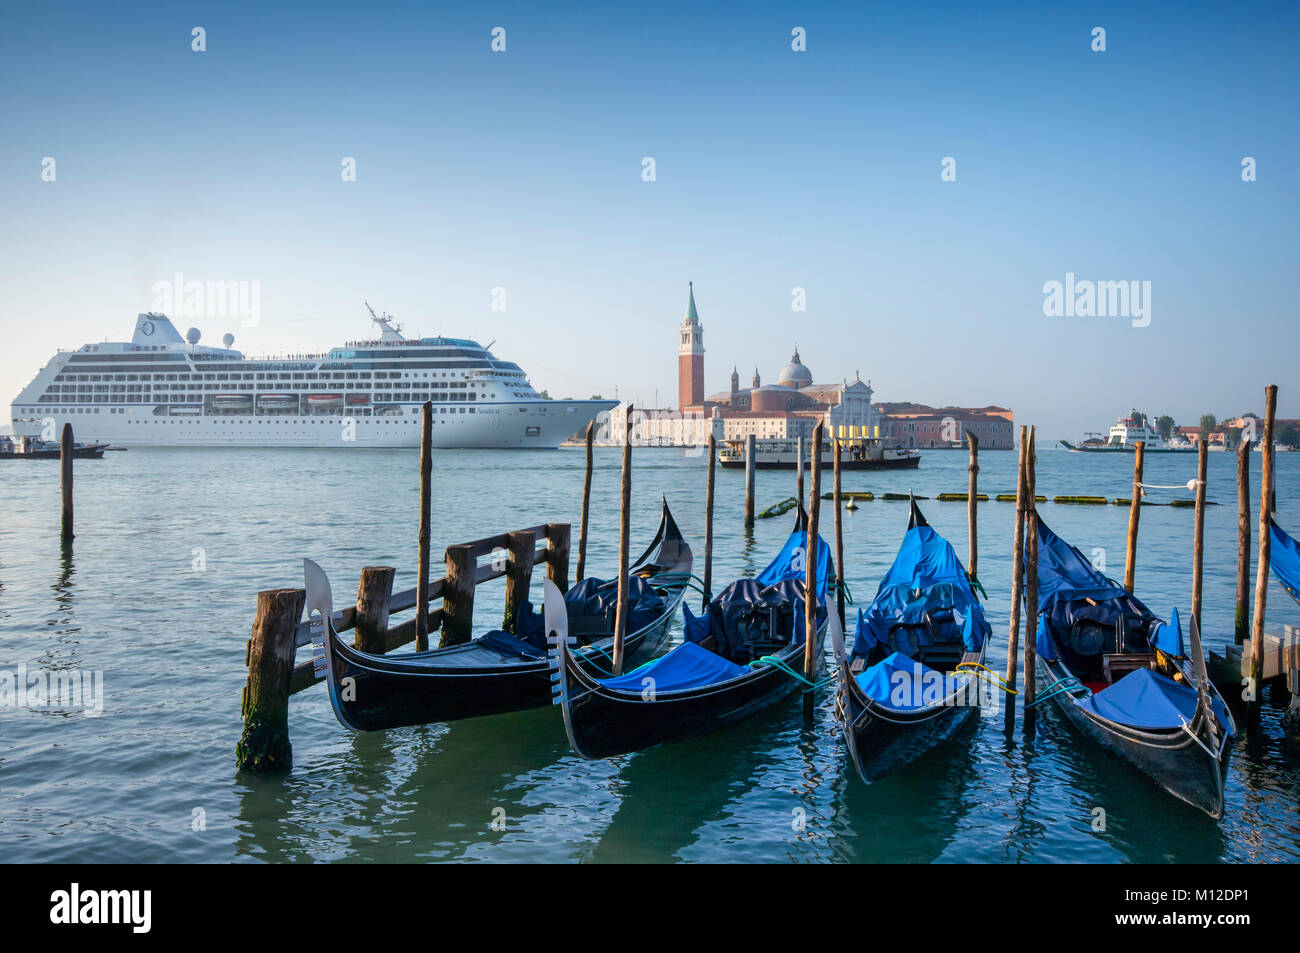 Cruise ship in Venice, Italy - Stock Image